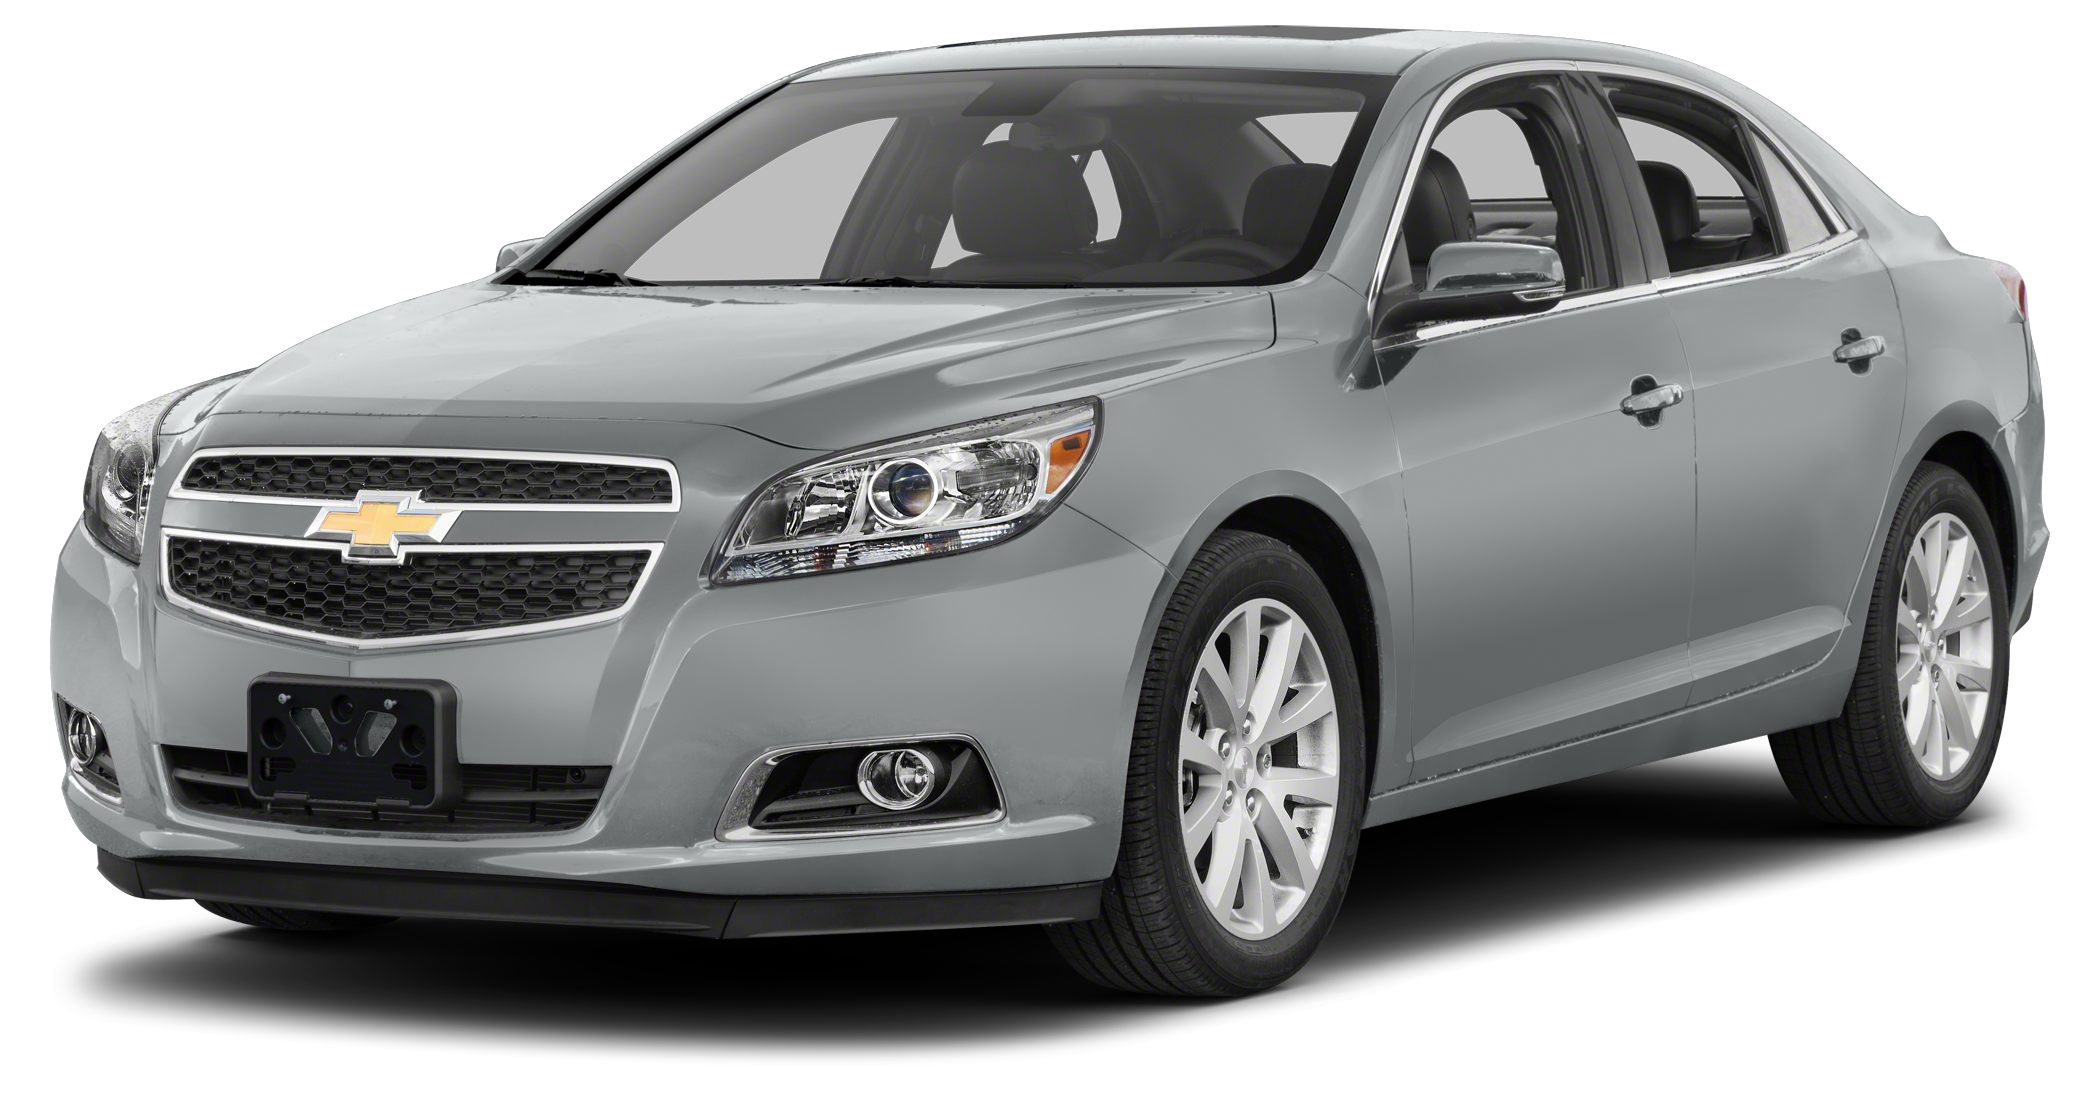 2013 Chevrolet Malibu LTZ w1LZ JUST REPRICED FROM 16300 PRICED TO MOVE 300 below Kelley Blue